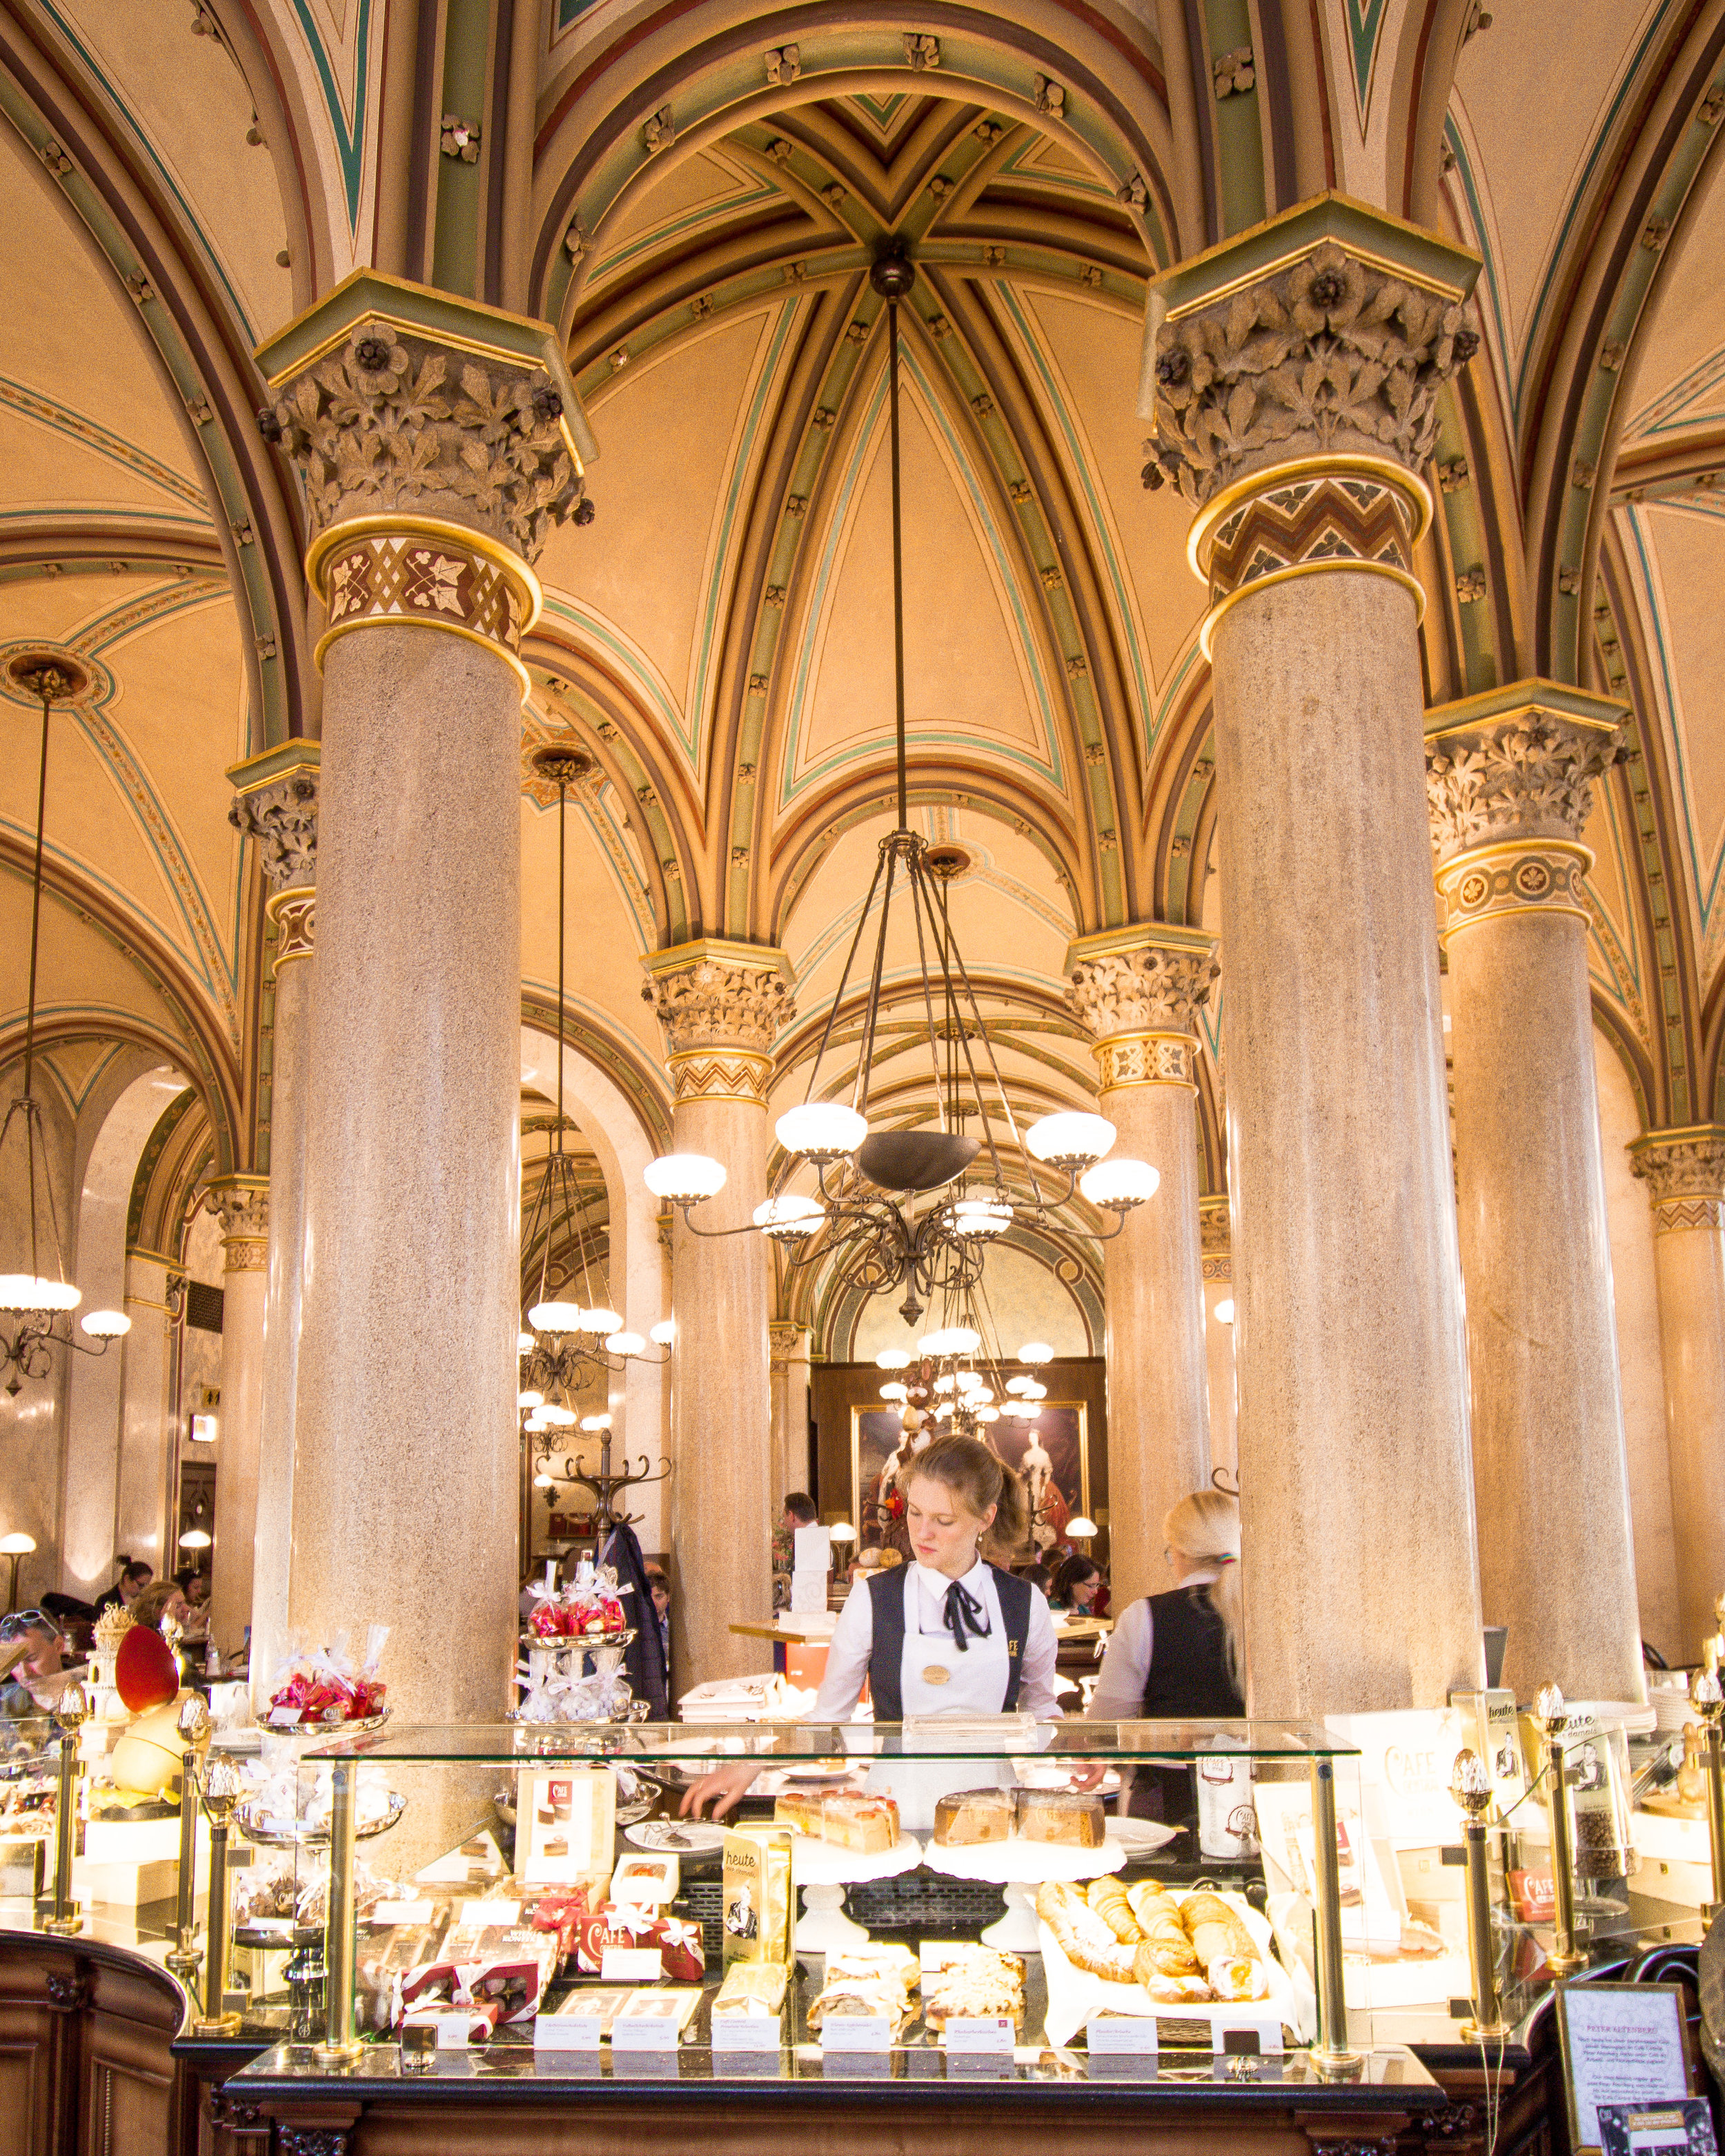 The amazingly opulent Cafe Centrale serves desserts that are even more beautiful, as can be seen from the dessert case shown above